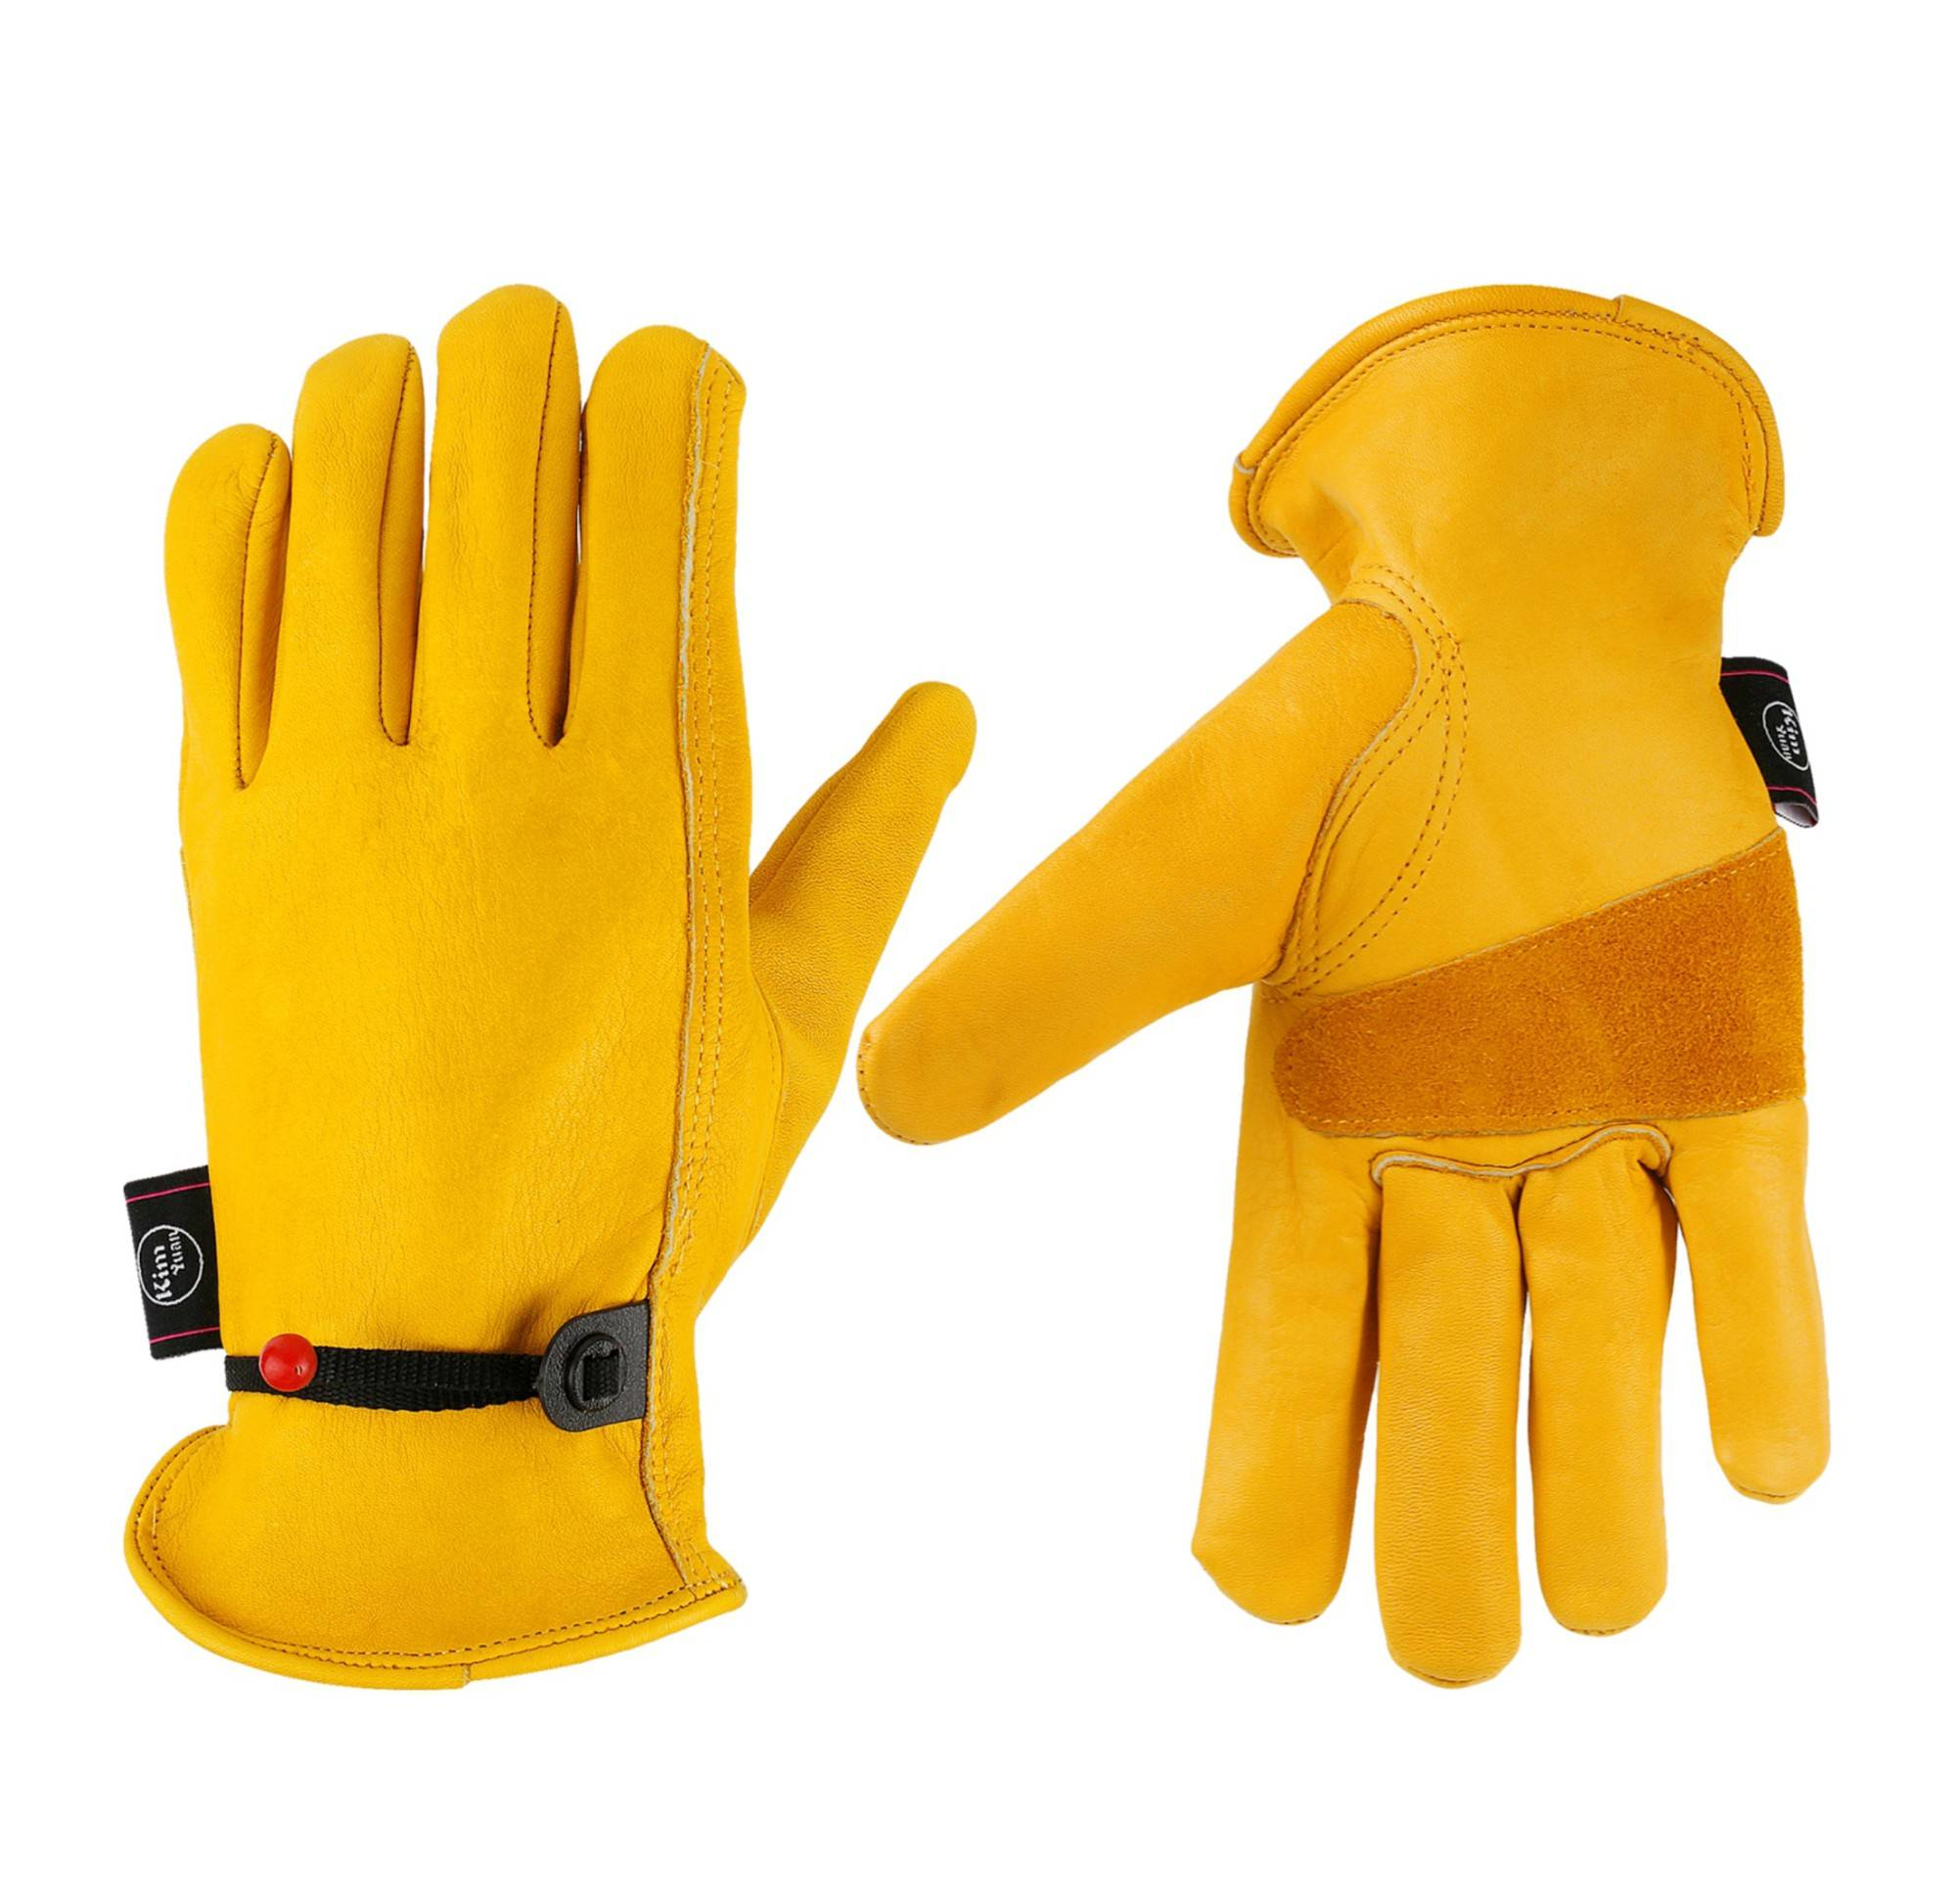 KIM YUAN Leather Work Gloves, with Adjustable Wrist, Wear-Resisting Puncture-Proof For Yard Work, Gardening, Farm, Warehouse, Construction, Motorcycle, Men & Women